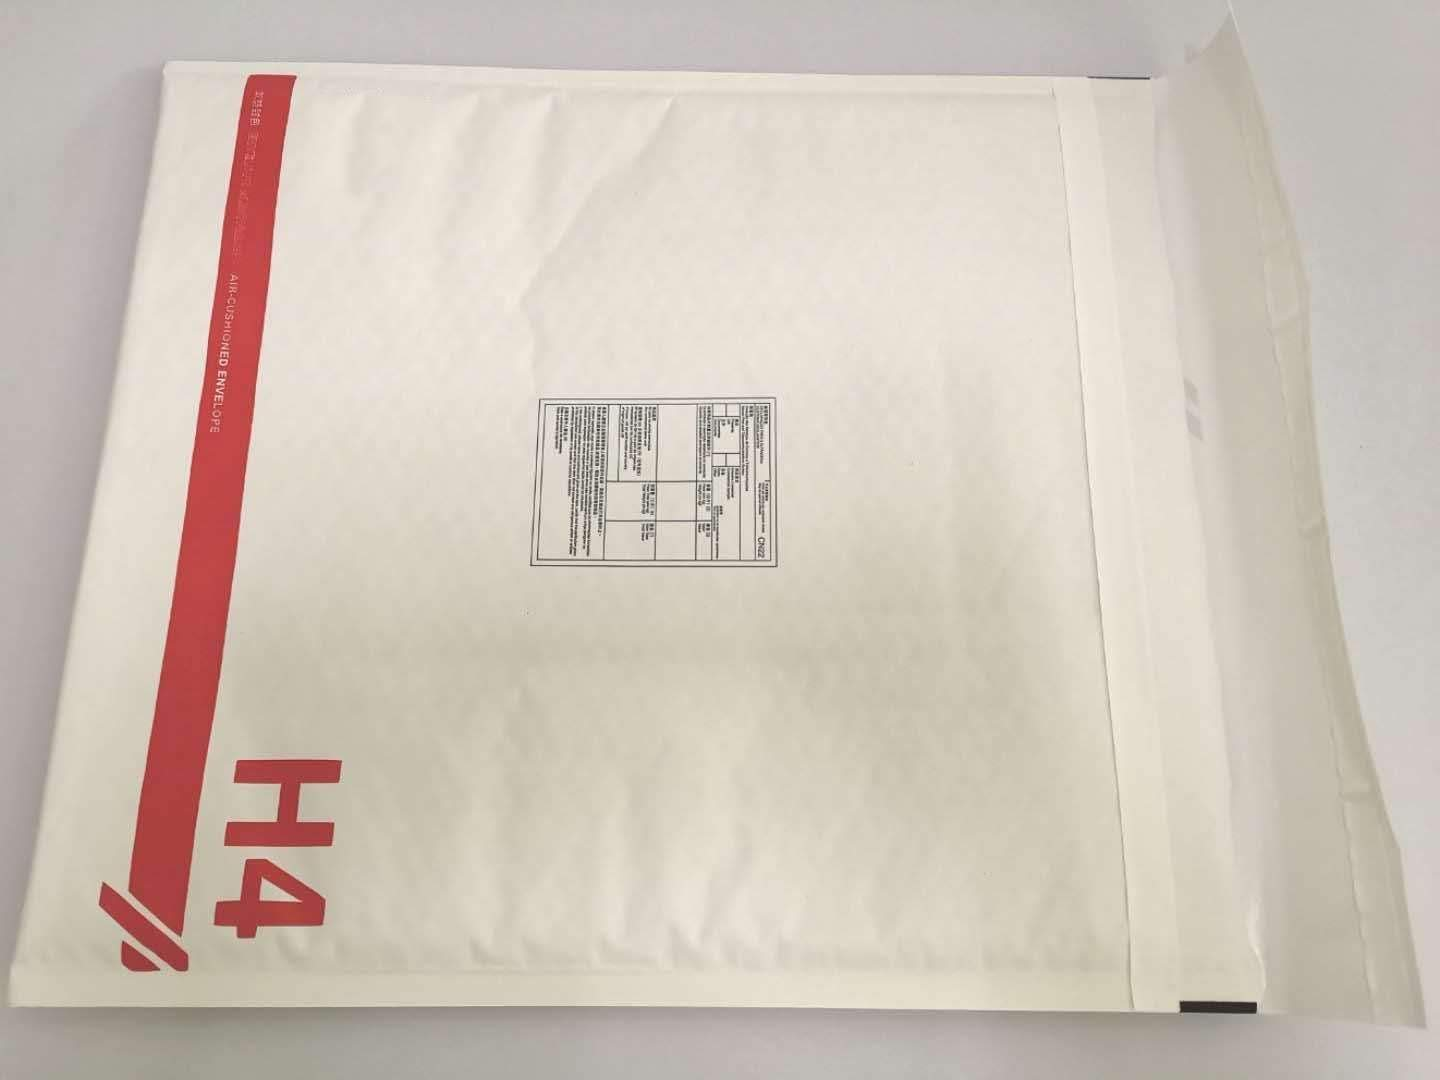 Generic Kraft Bubble Mailers Padded Envelopes 16x18 Bubble Mailers 45cmX41cm Pack of 10 Large Bubble envelopes White Kraft Paper. Shipping and mailing. (10 Pack